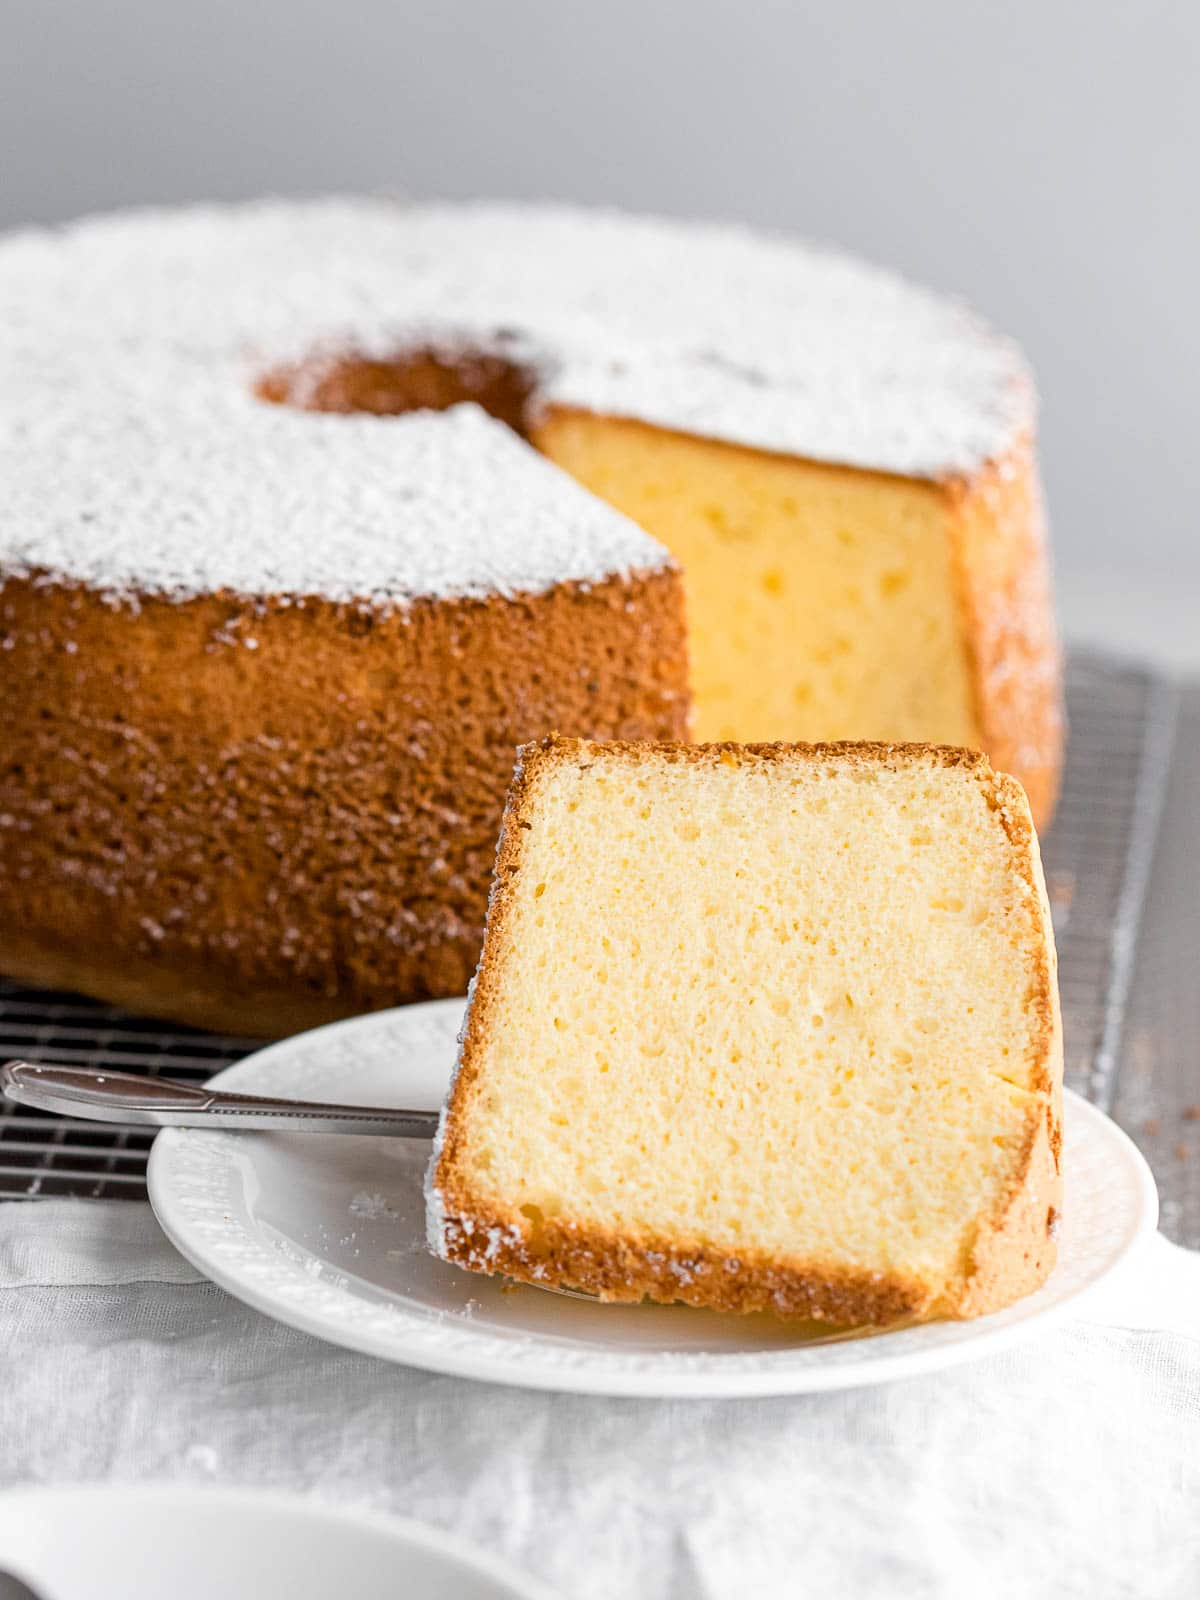 slice of fluffy Japanese chiffon cake on a white plate with powdered sugar